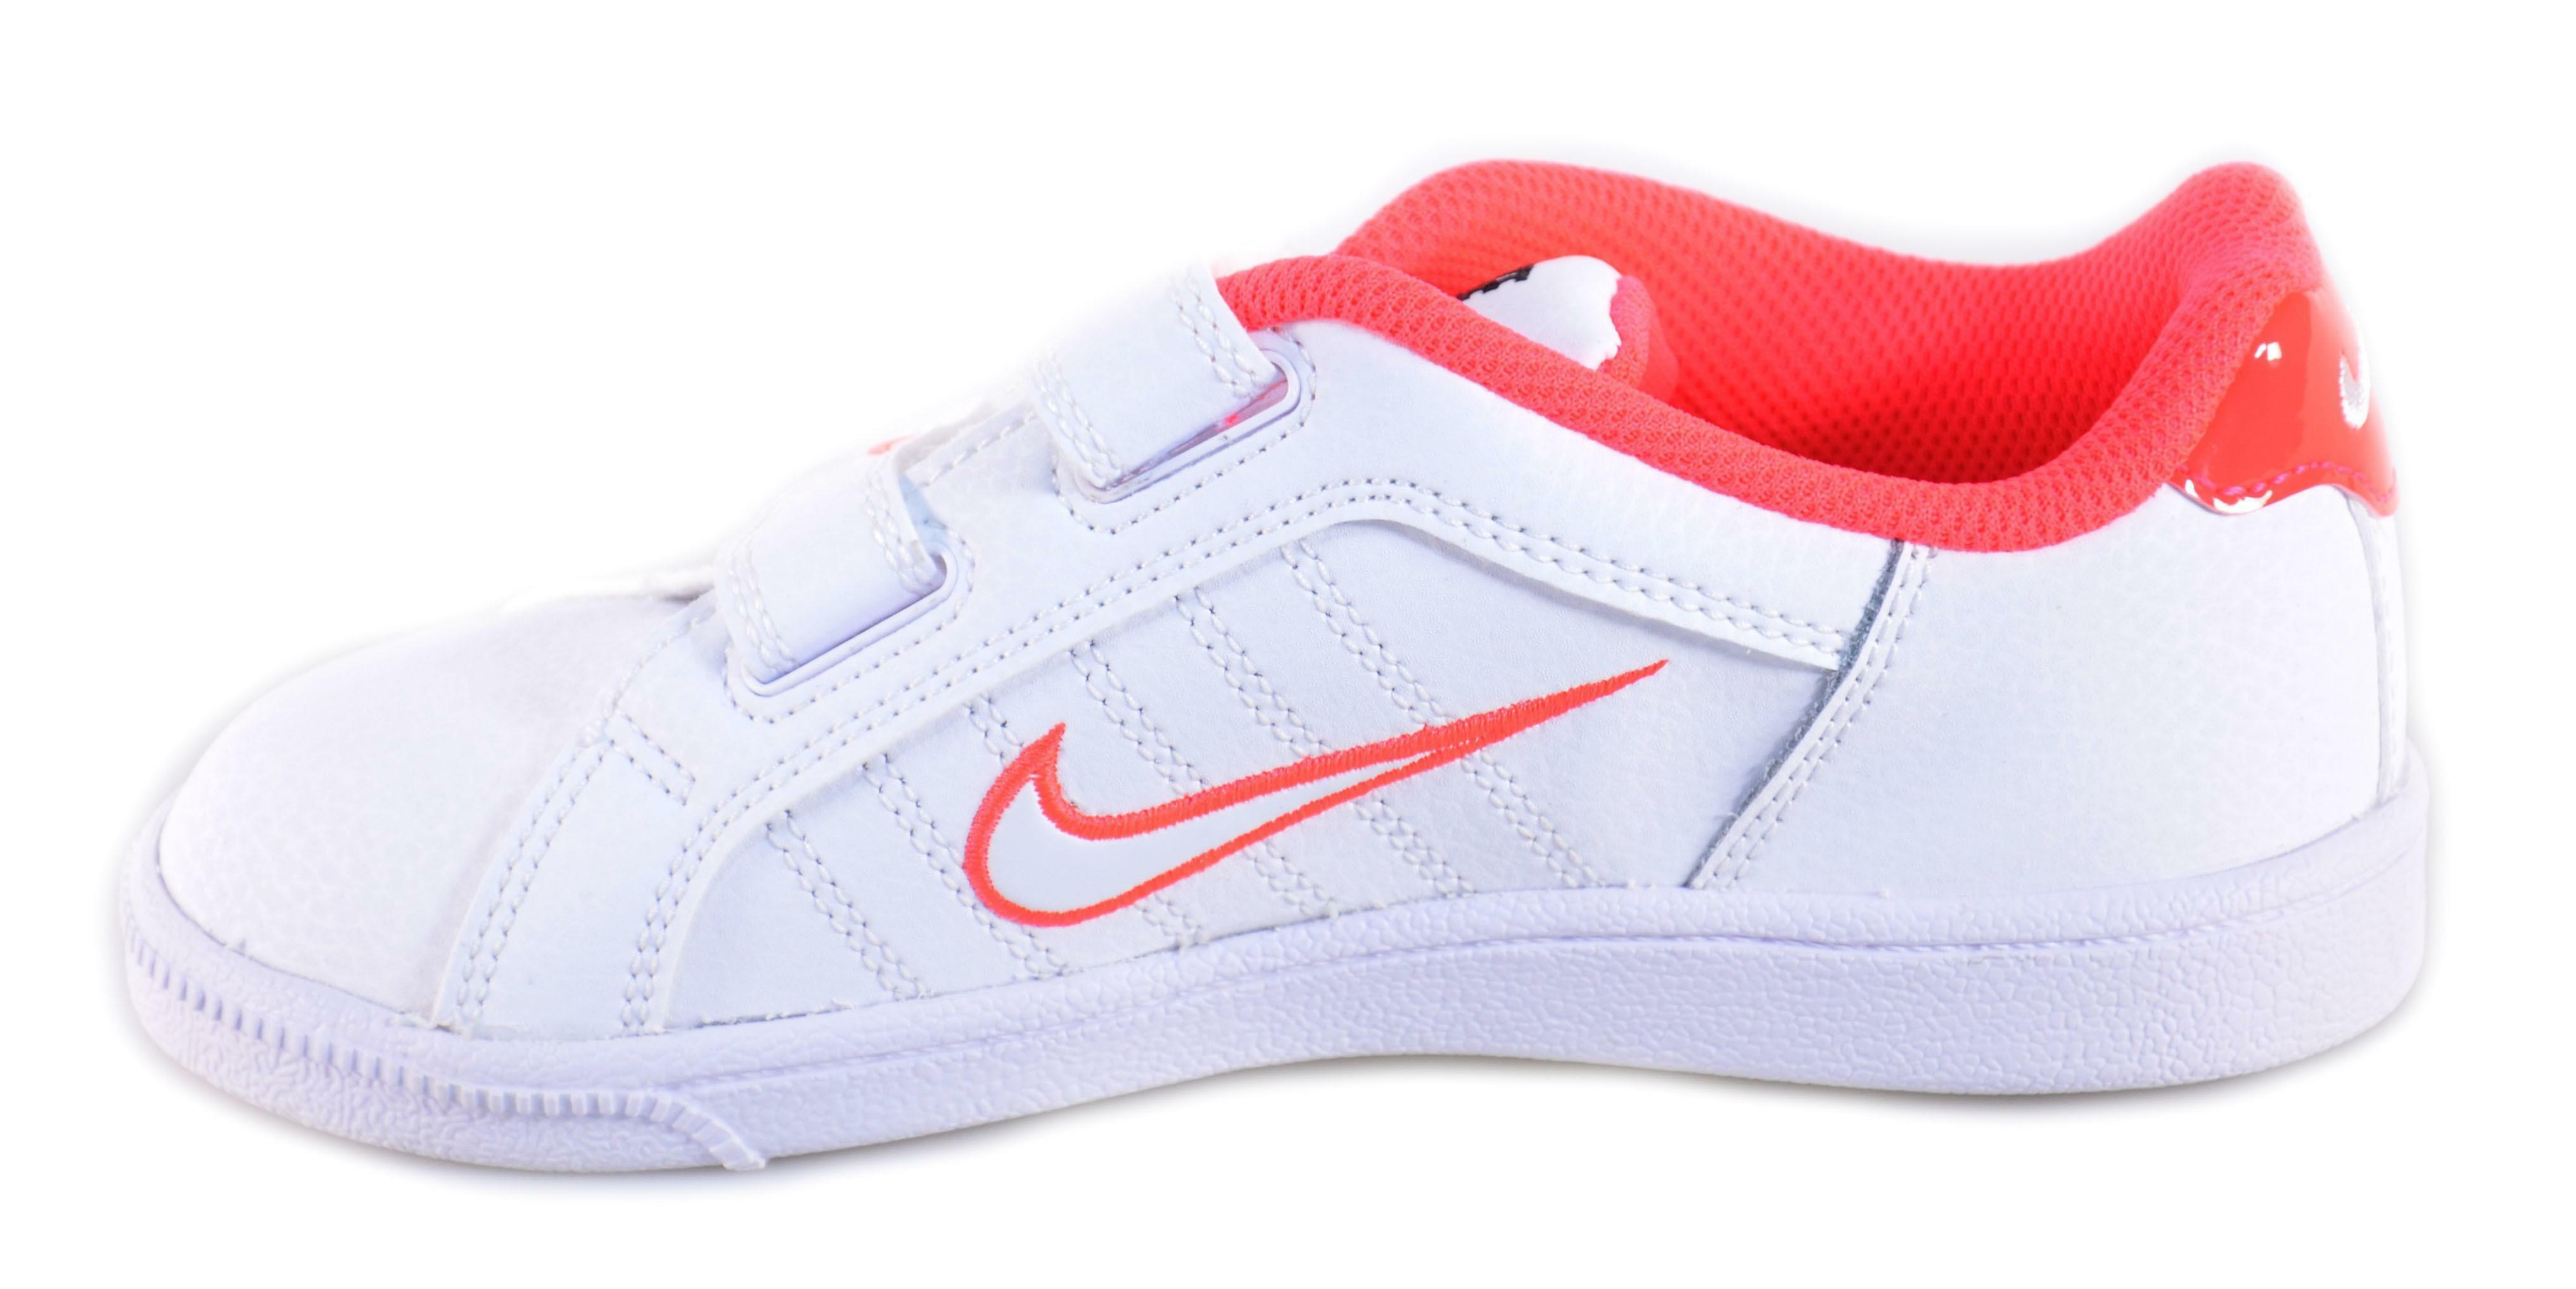 nike nike court tradition 2 plus (psv) scarpe bambina bianche velcro 408088